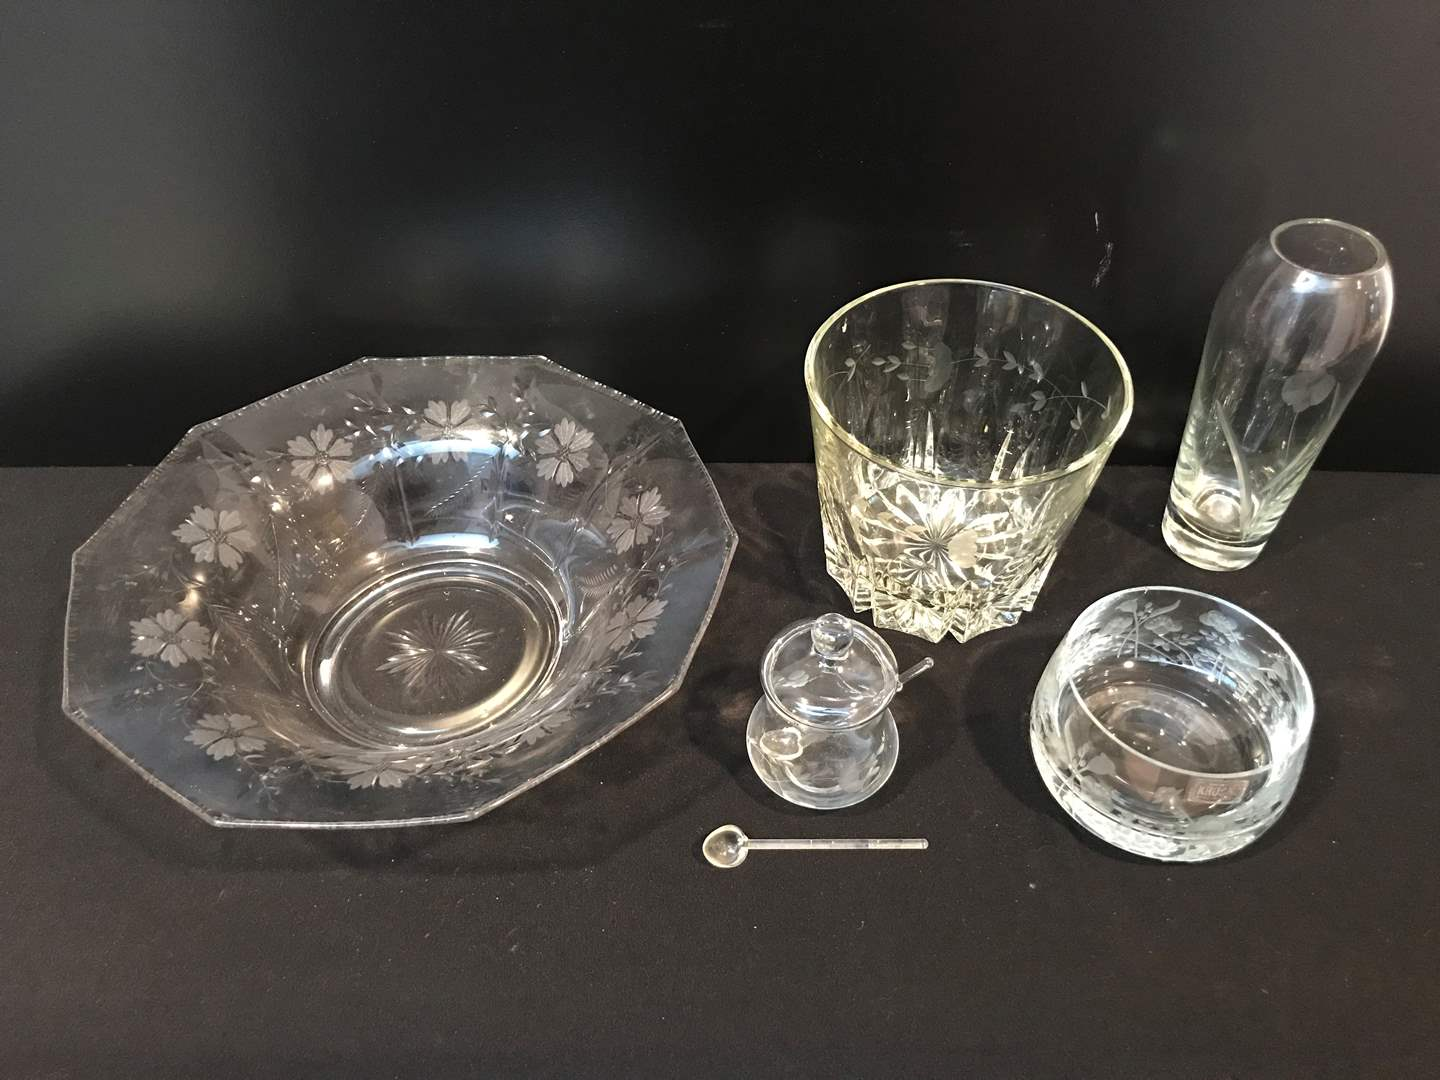 Lot # 44 - Etched Crystal Glassware (5 Pieces) (main image)